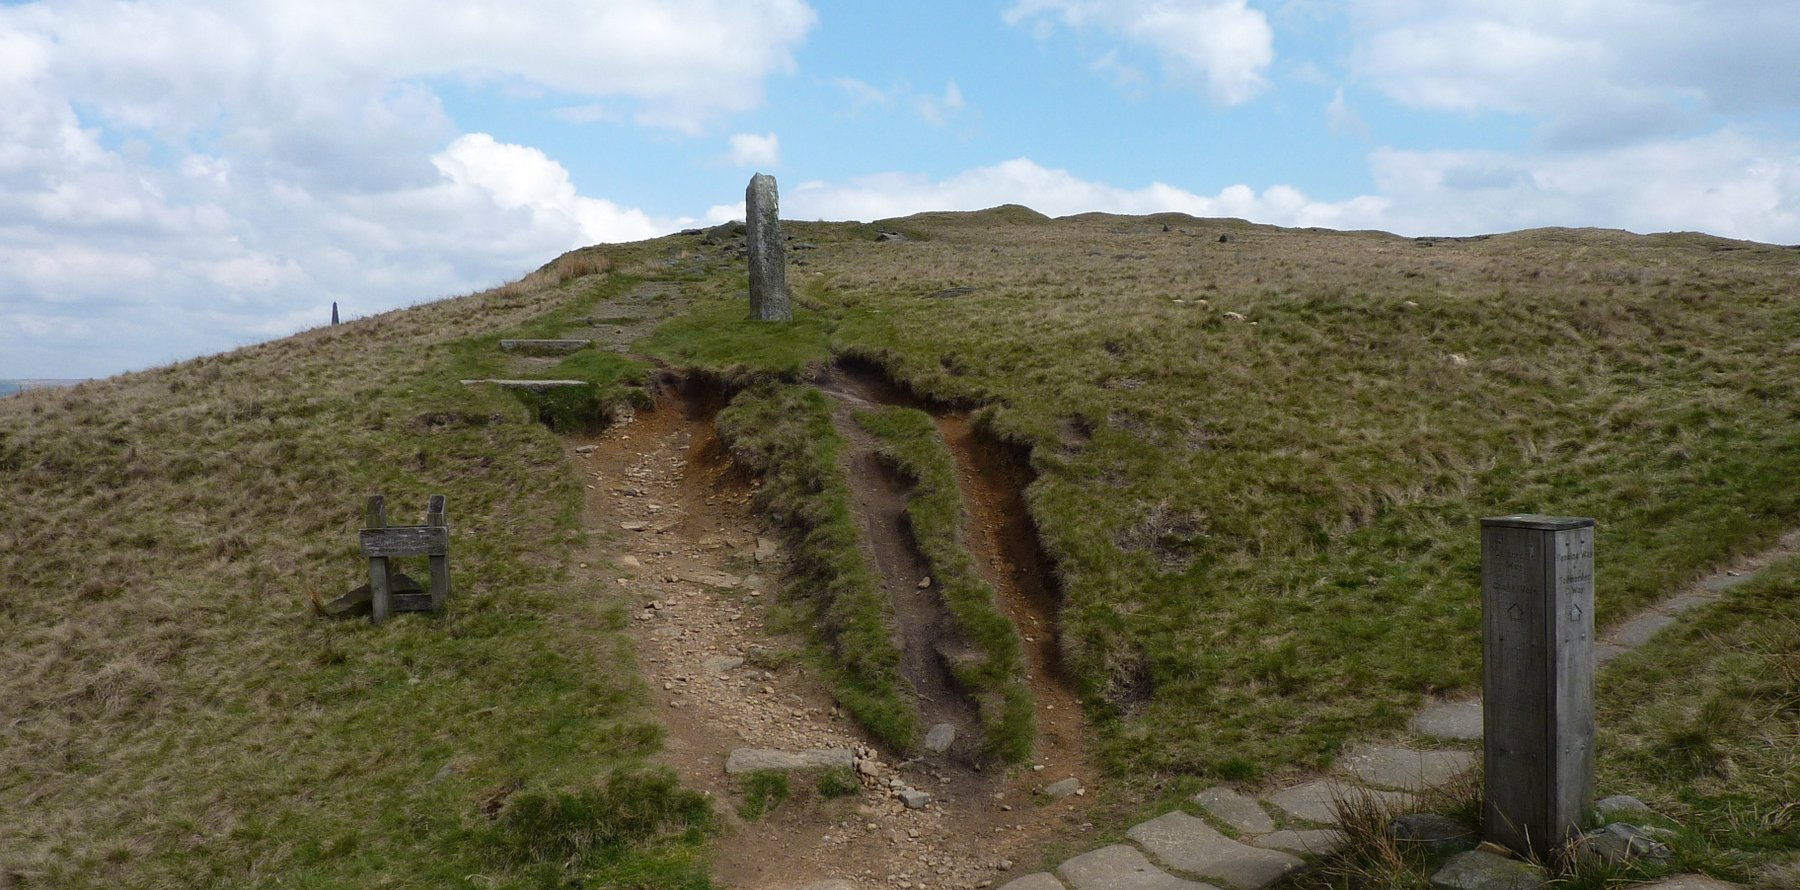 Crooked stone and unusual box signpost on the way to Stoodley Pike